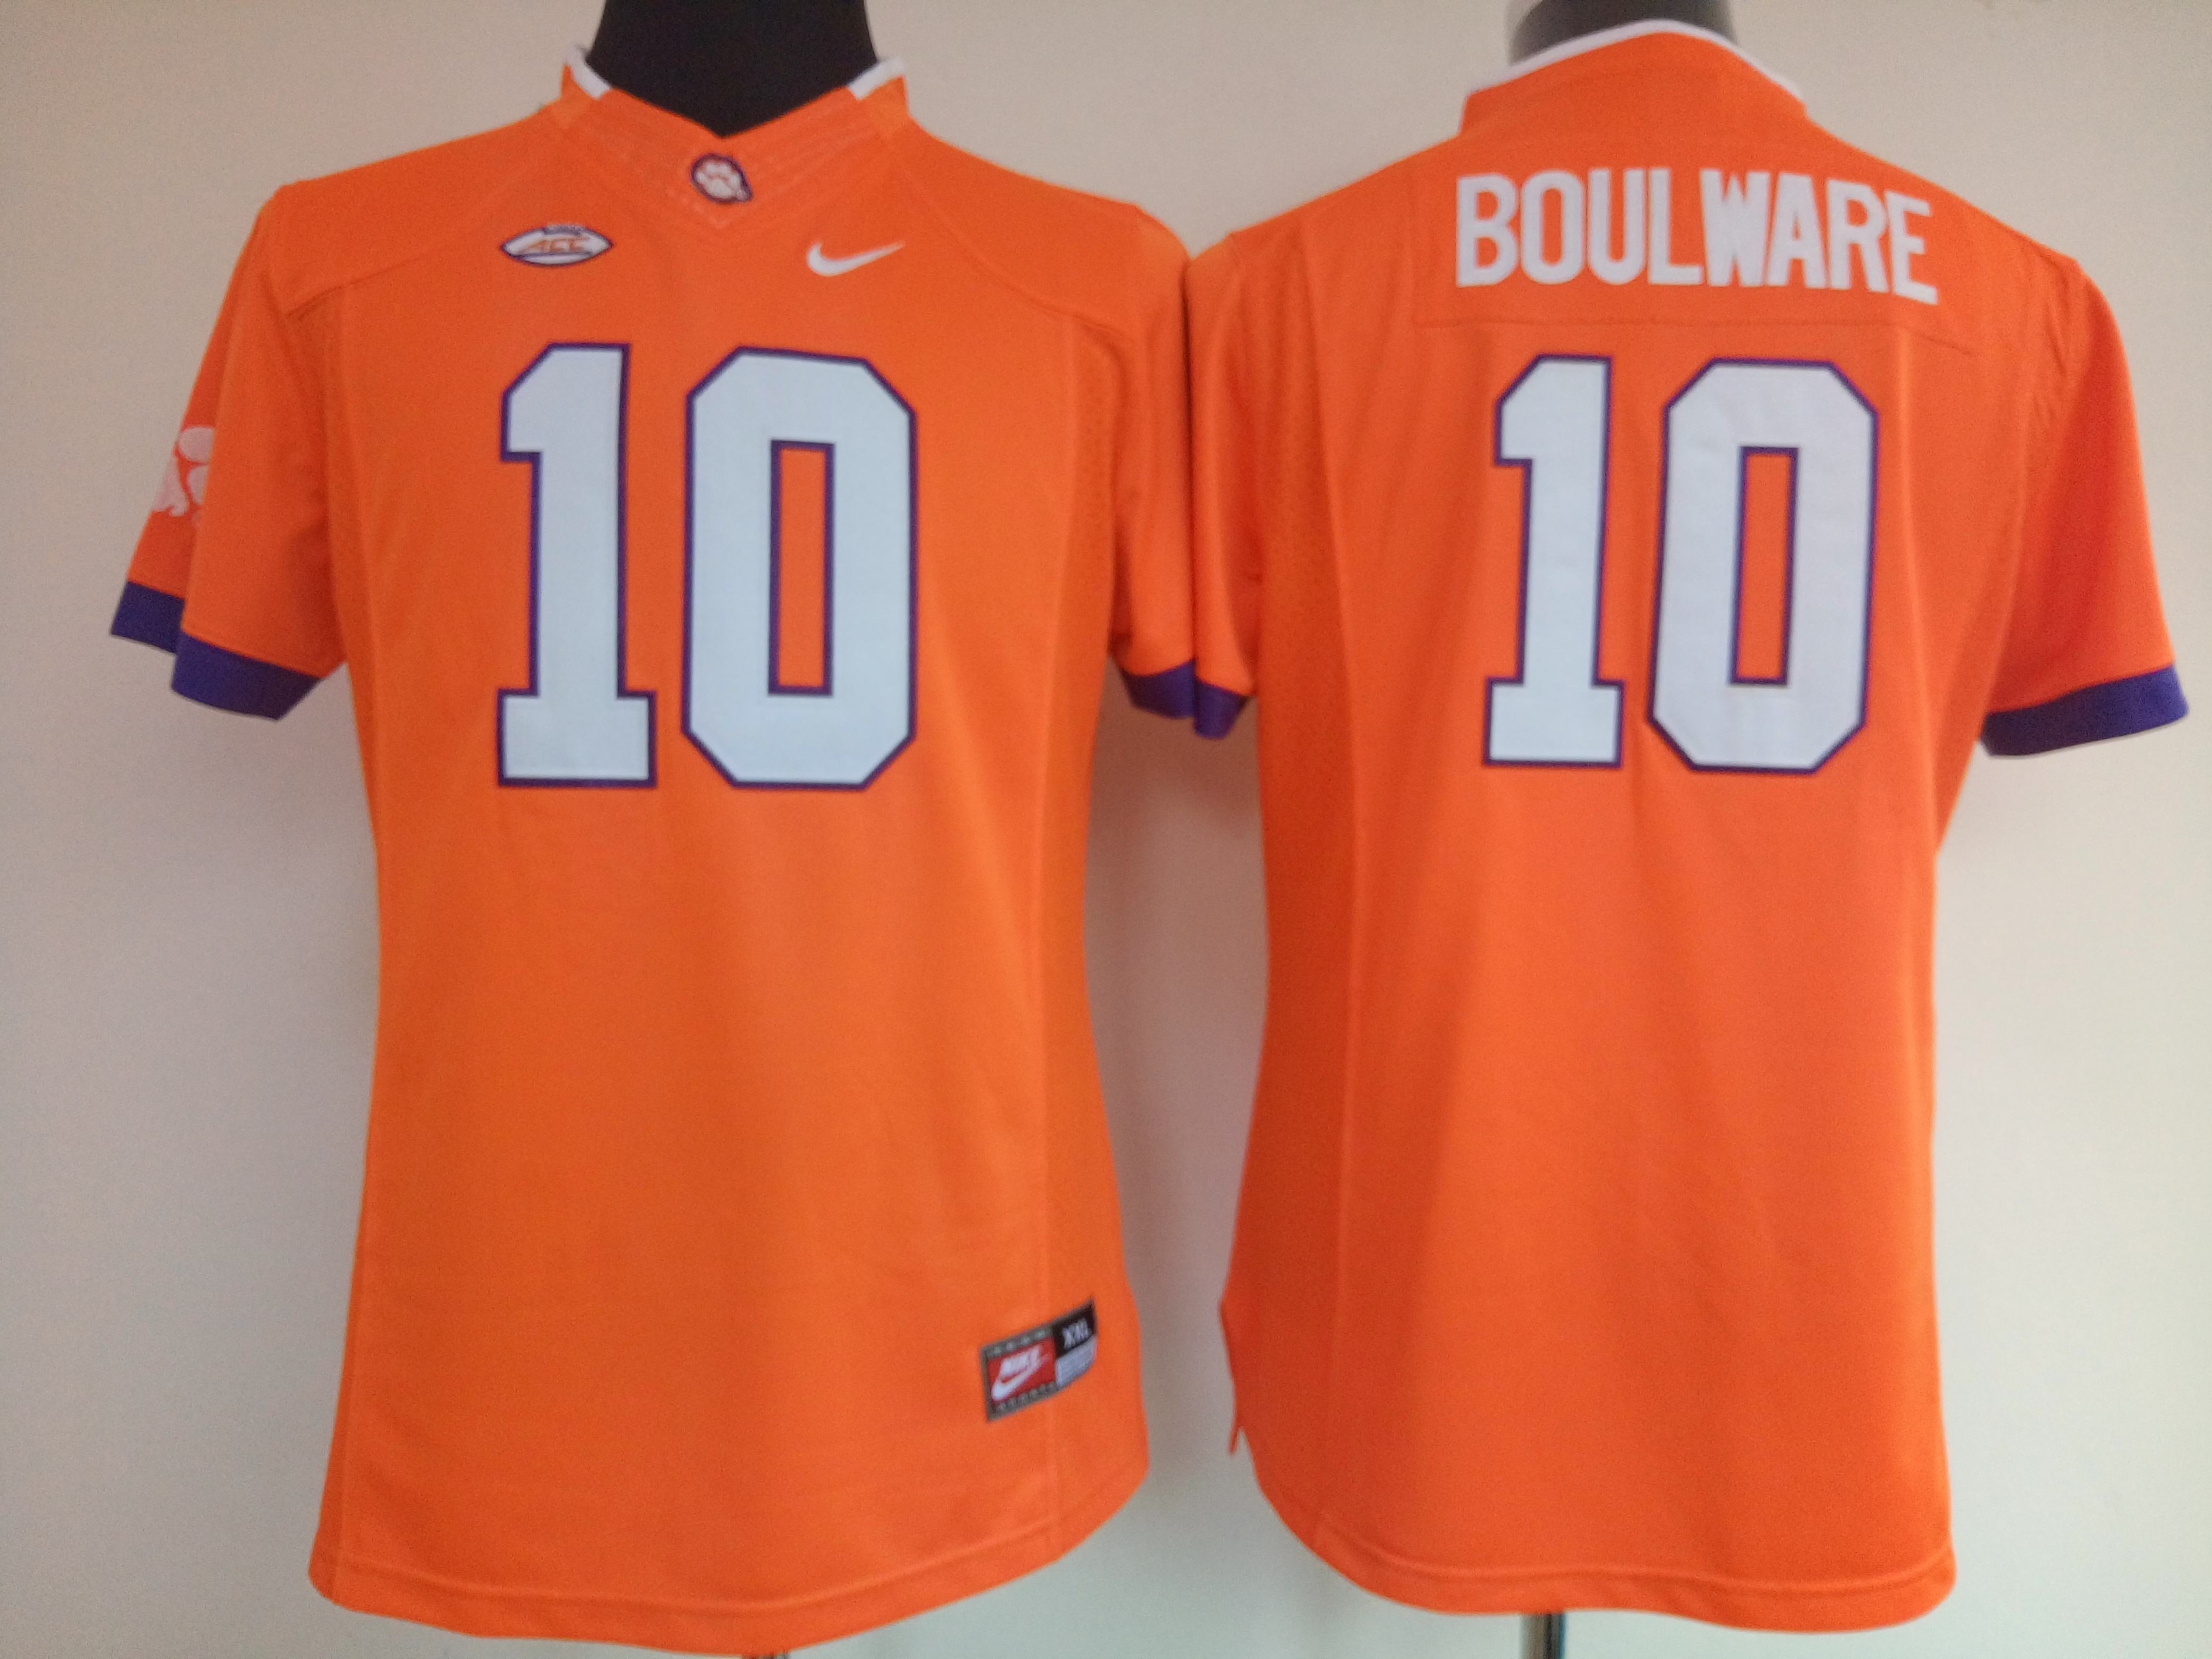 NCAA Womens Clemson Tigers Orange 10 Boulware jerseys